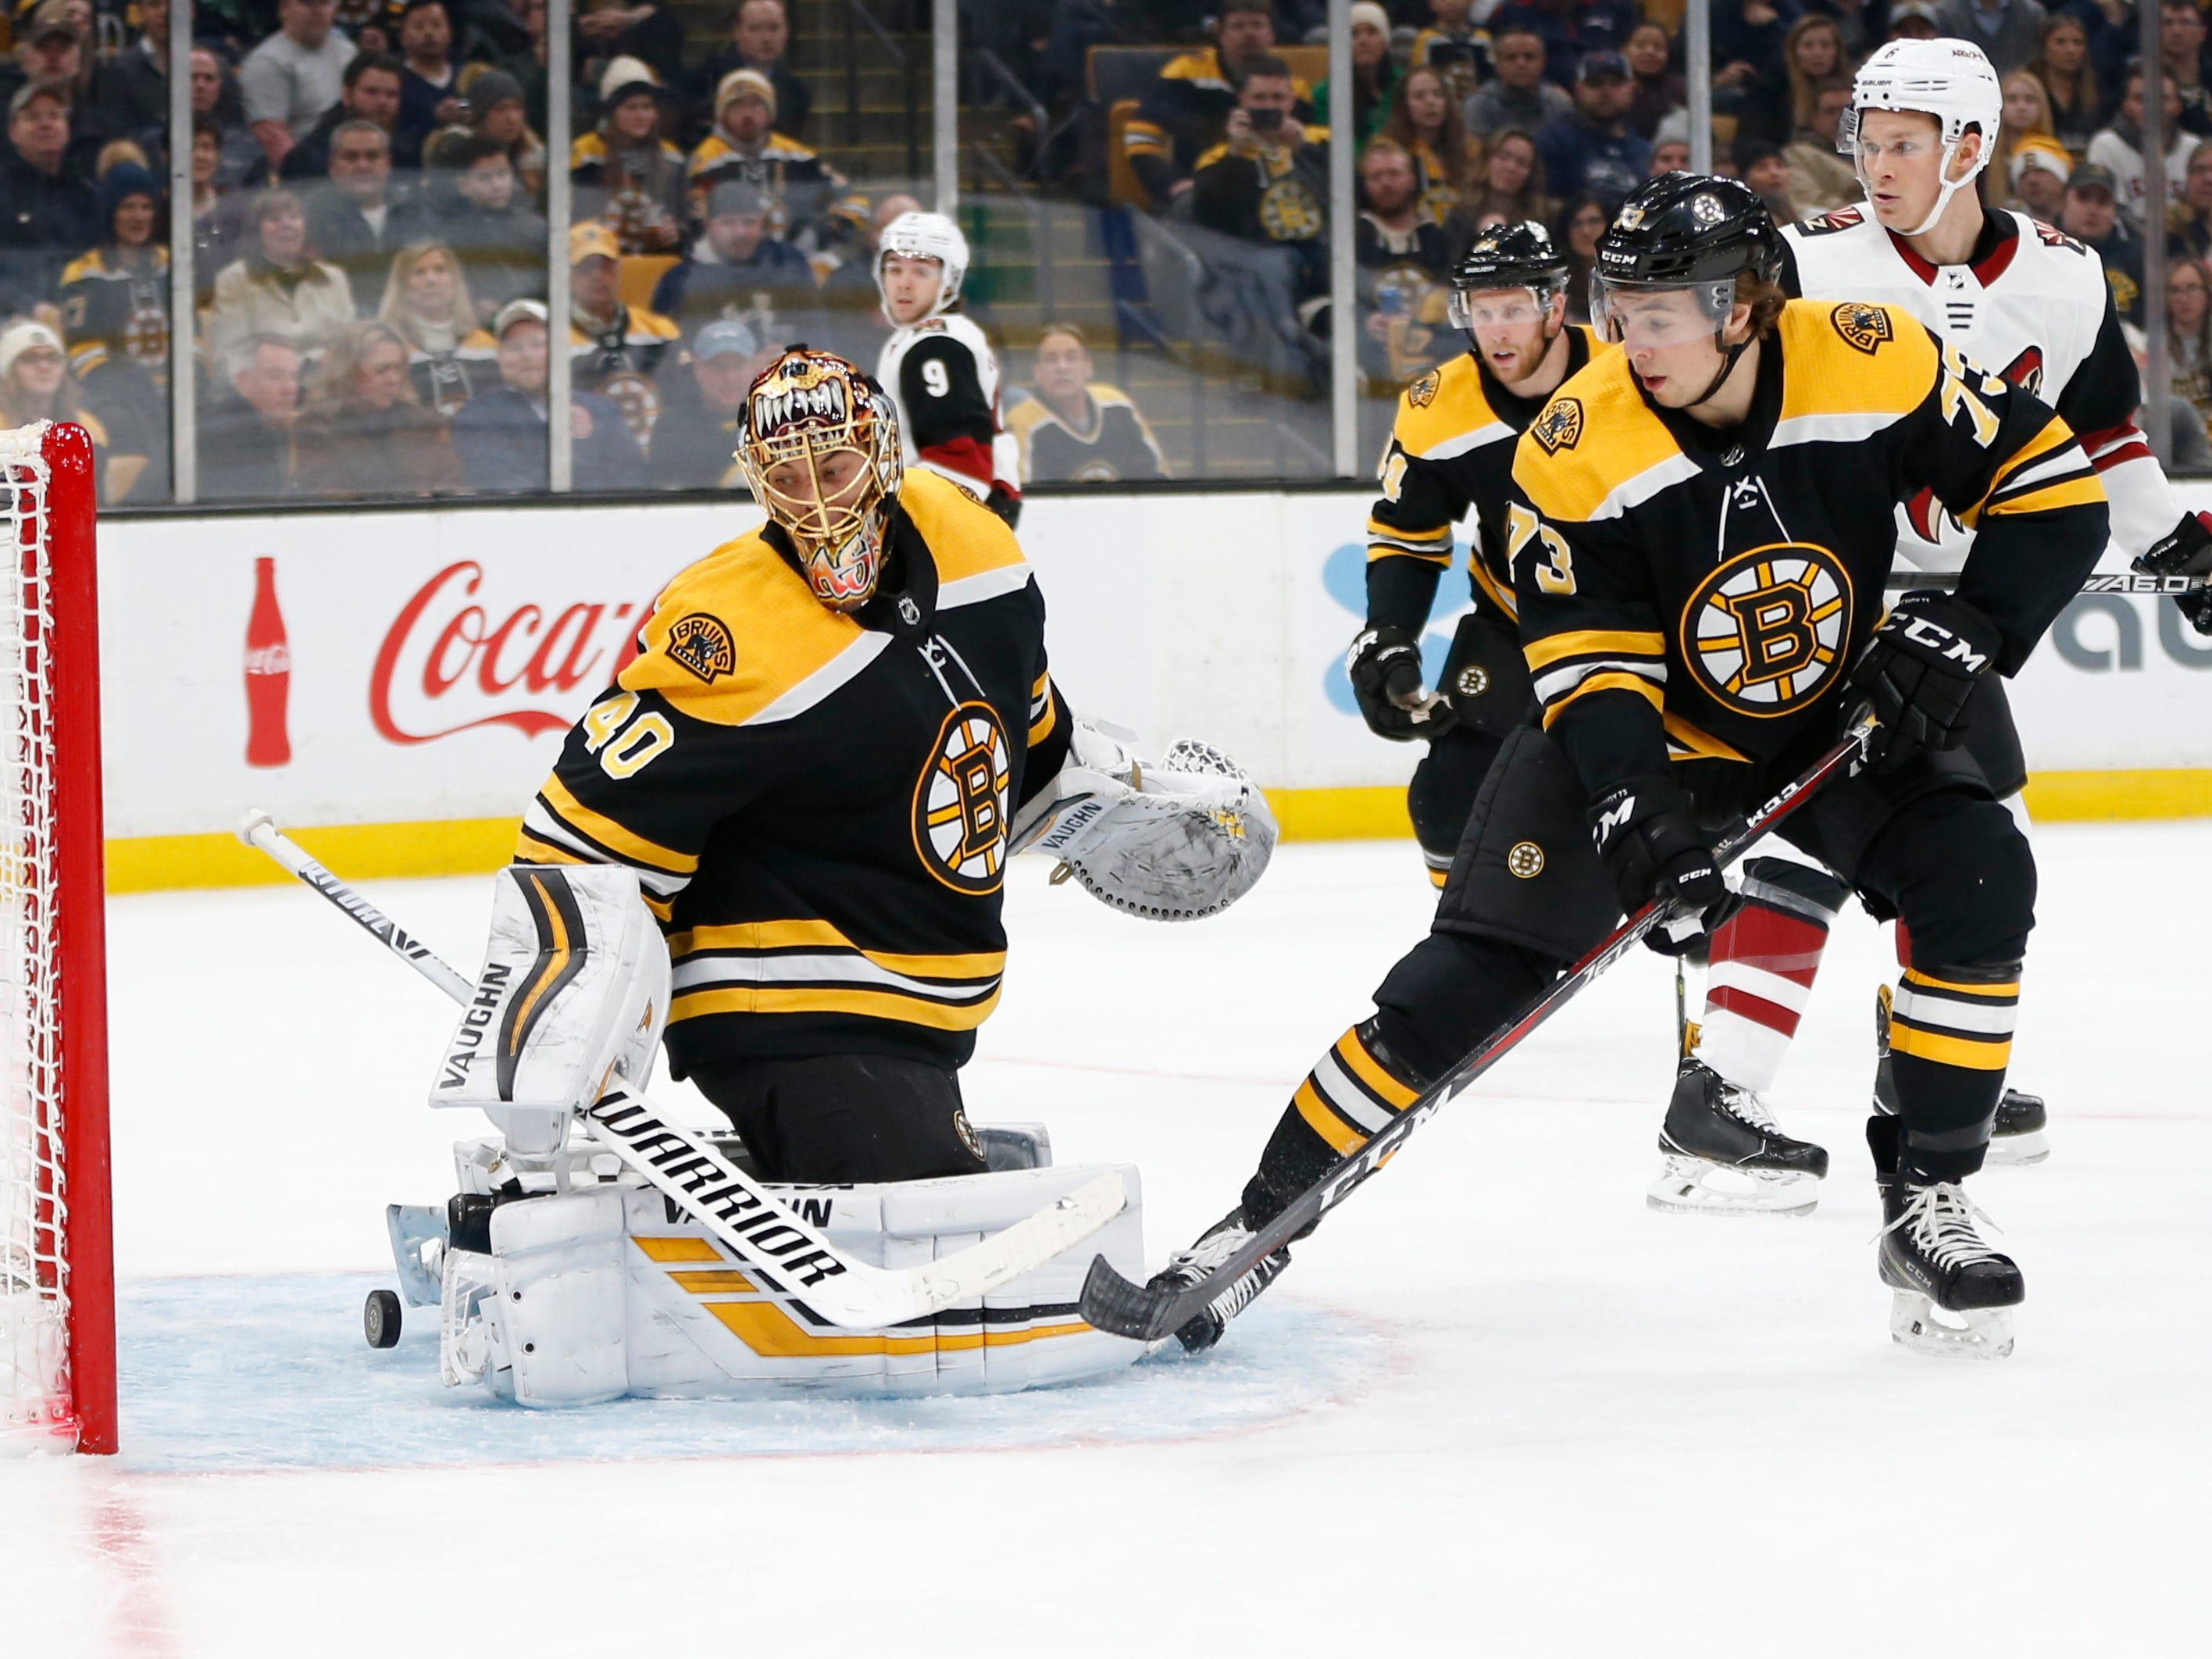 Dec 11, 2018; Boston, MA, USA; Boston Bruins goaltender Tuukka Rask (40) looks over his back at the goal scored by Arizona Coyotes center Nick Schmaltz (not pictured) during the first period at TD Garden. Mandatory Credit: Greg M. Cooper-USA TODAY Sports